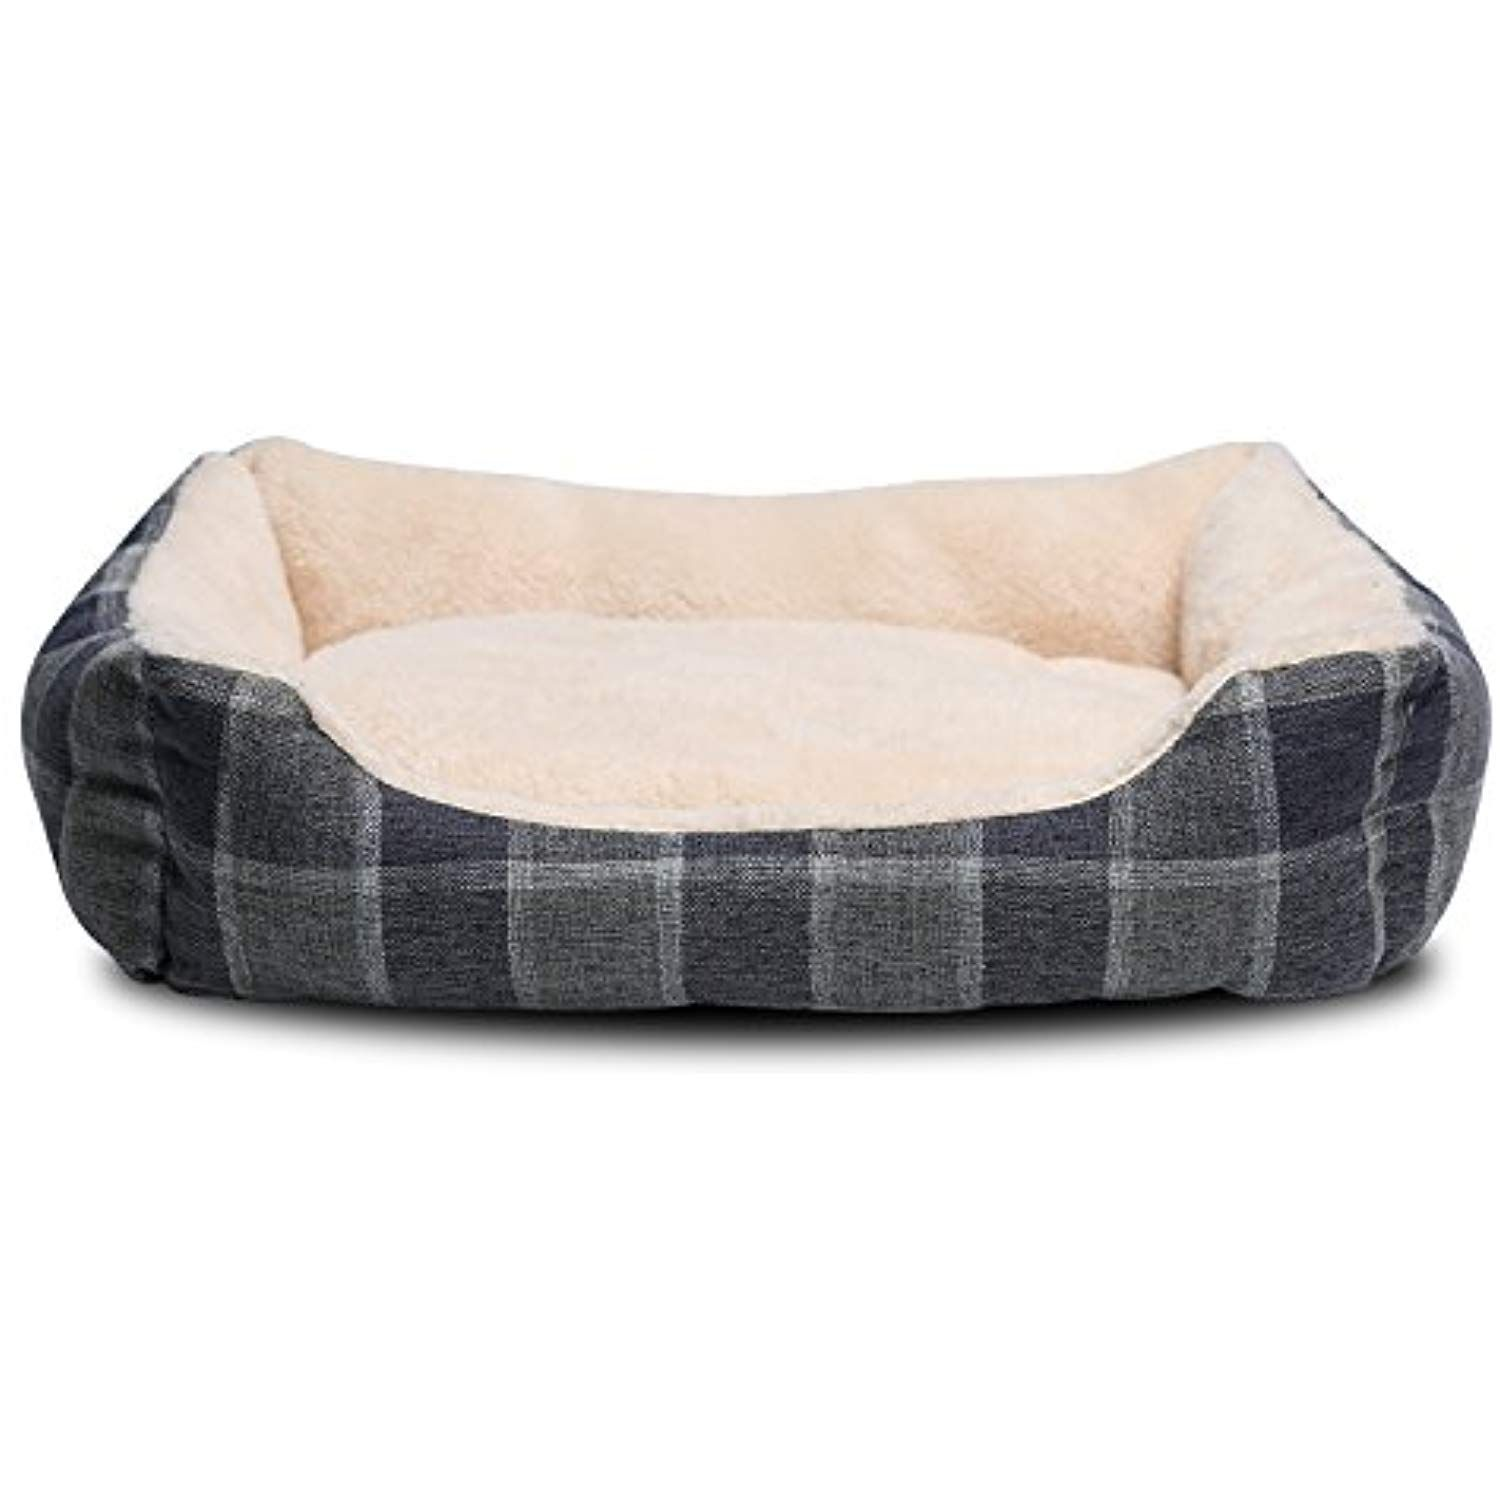 Jema Rectangle Pet Dog Sofa Bed Comfortable Two Sided Cashmere Cushion Lattice Patterned Linen Fabric Cover Square Bed For Dog An Dog Bed Dog Sofa Pet Sofa